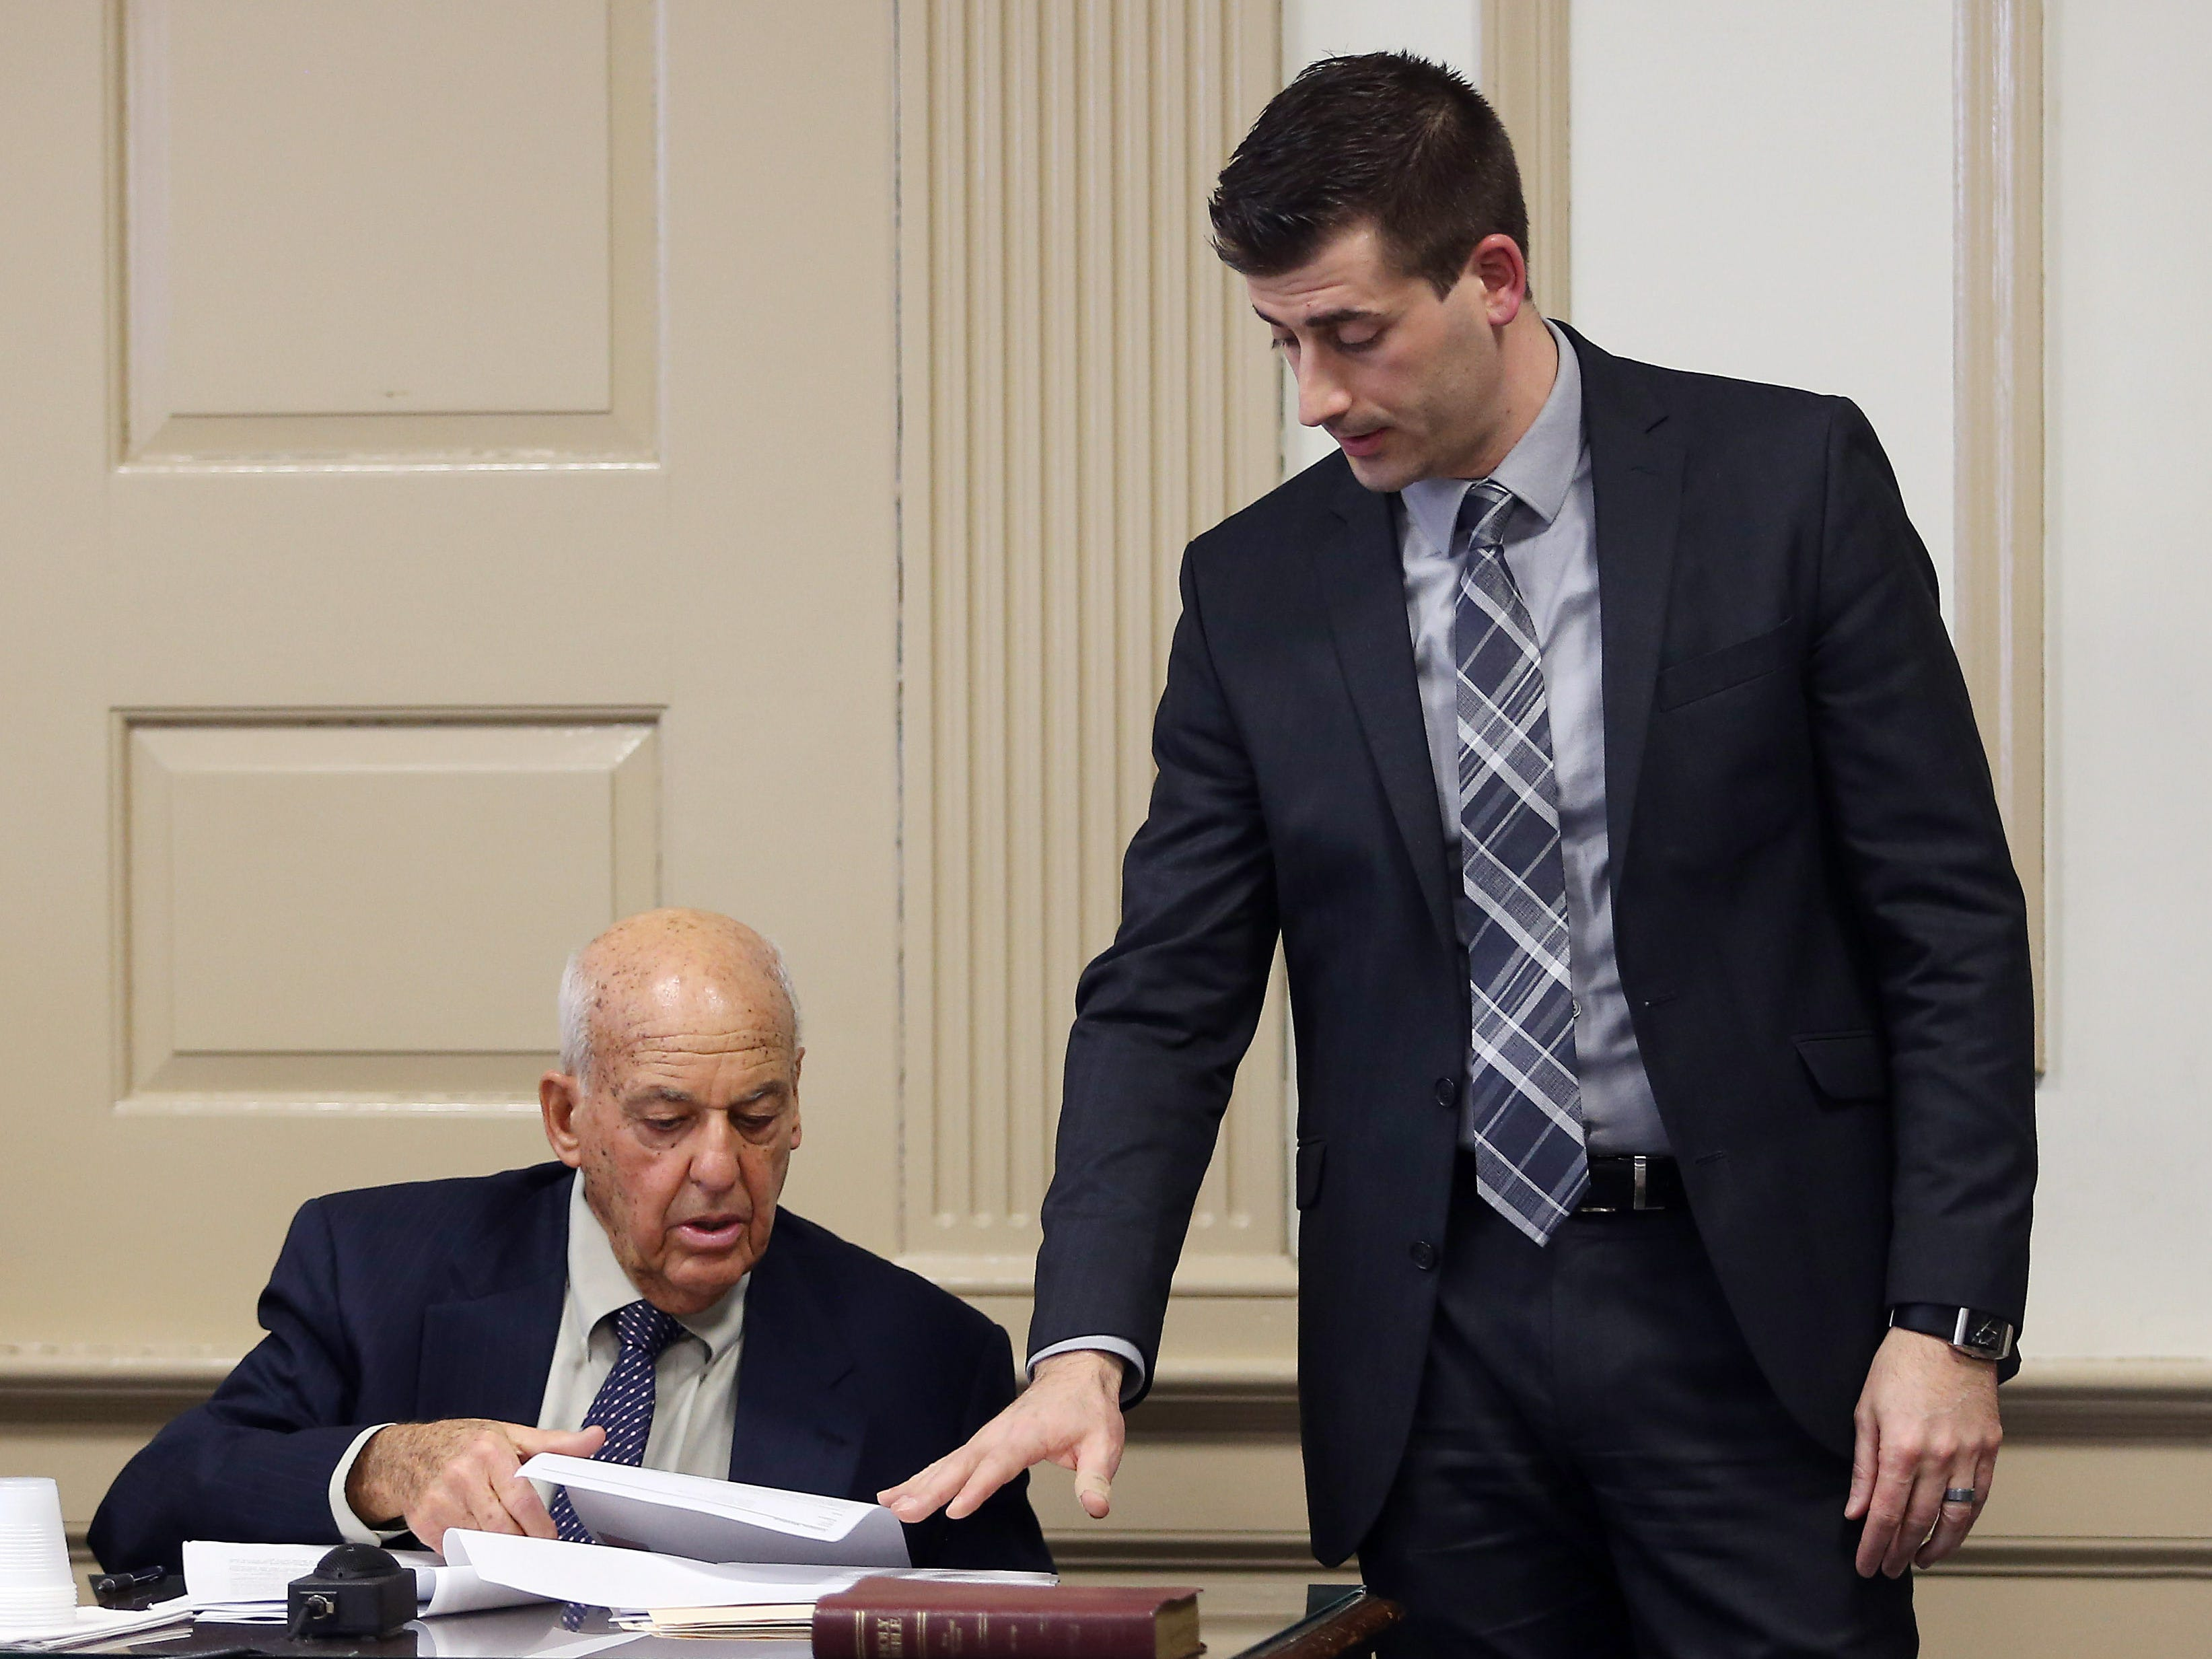 Forensic pathologist Cyril Wecht testifies, questioned on cross examination by assistant prosecutor Matthew Troiano in Morris County Superior Court. Wecht, nationally known because of his involvement in numerous high-profile assassination cases was hired by the defense as an expert witness for the Virginia Vertetis murder trial. Vertetis says she fatally shot boyfriend Patrick Gilhuley to death as he tried to beat and choke her at her Mount Olive home in 2014. March 27, 2017, Morristown, NJ